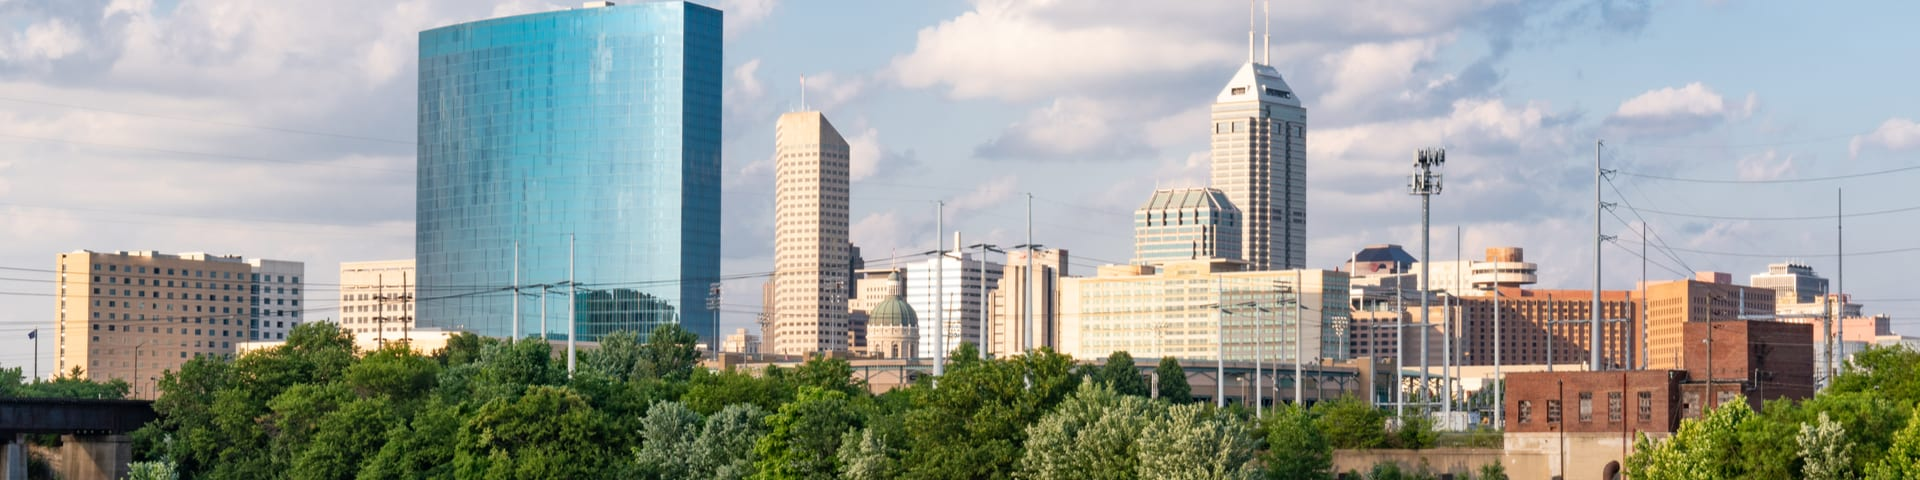 Indiana (IN) Indoor Air Quality and Mold Expert